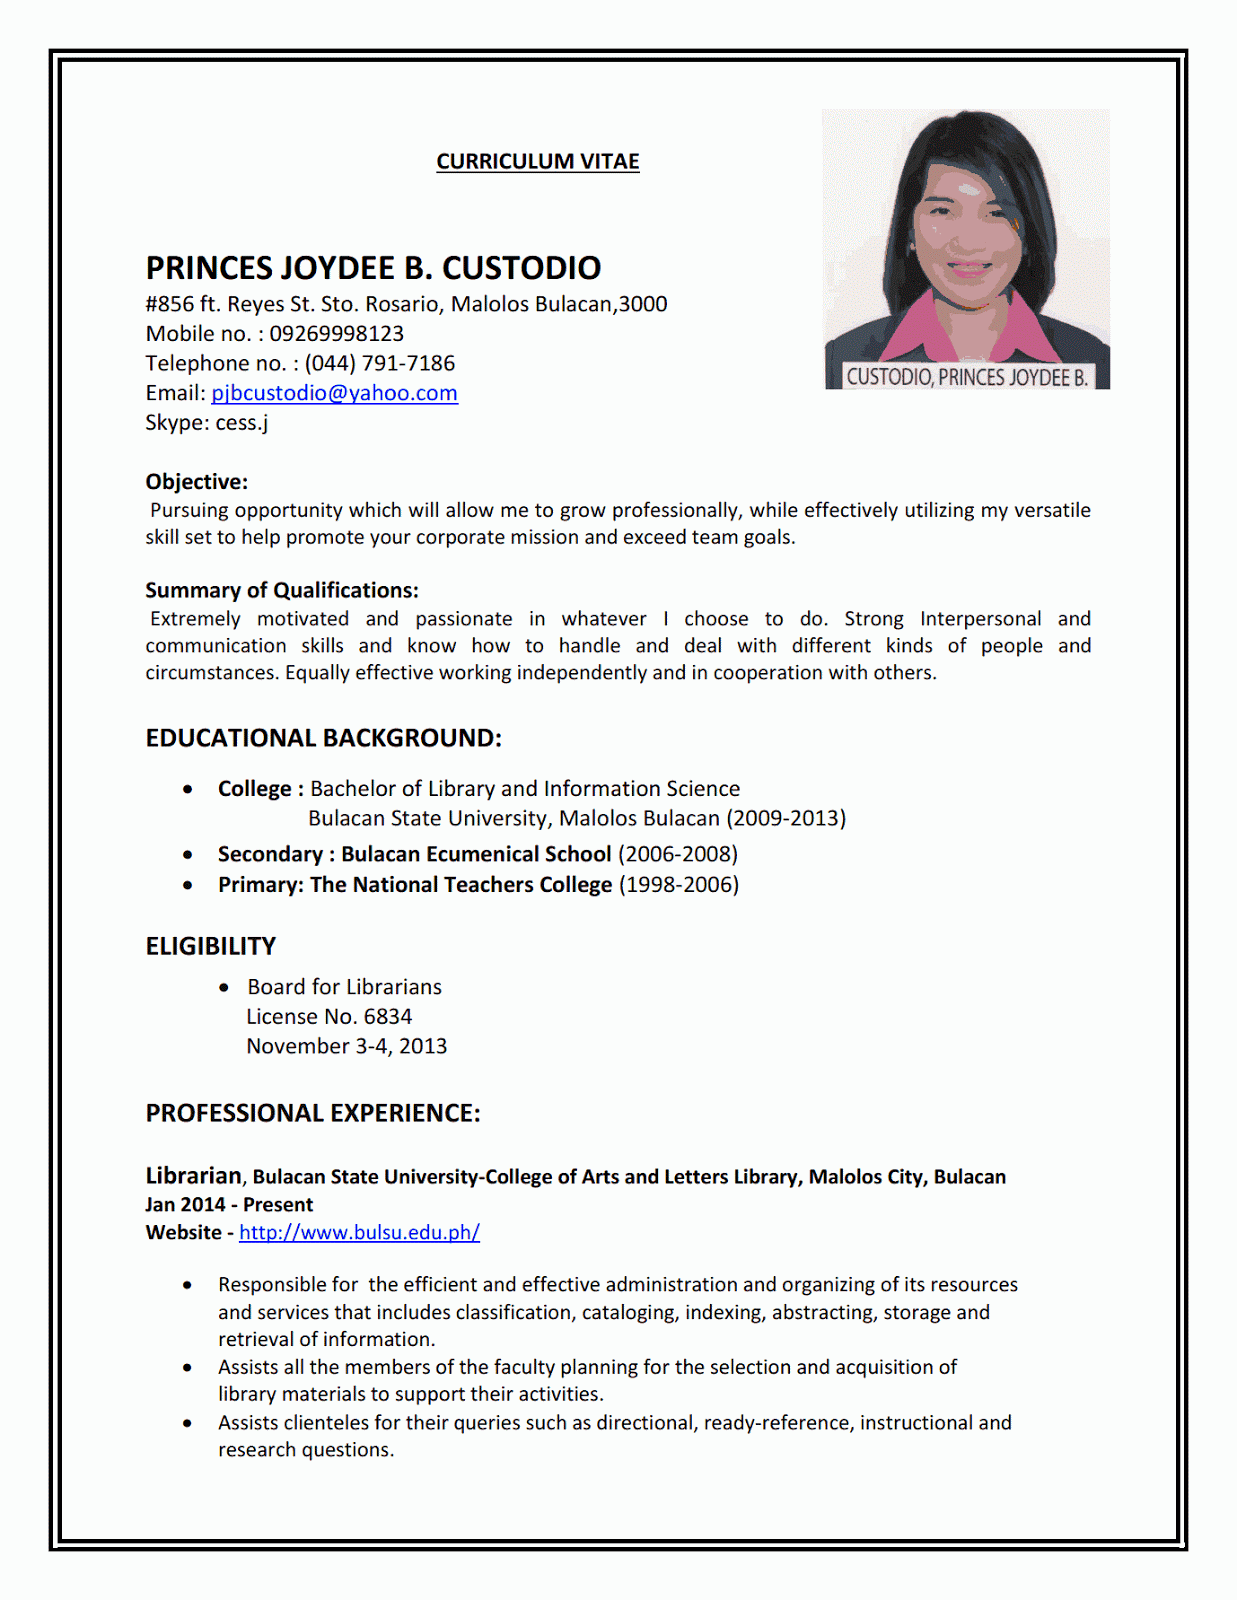 resume sample first job | sample resumes | job resume | pinterest